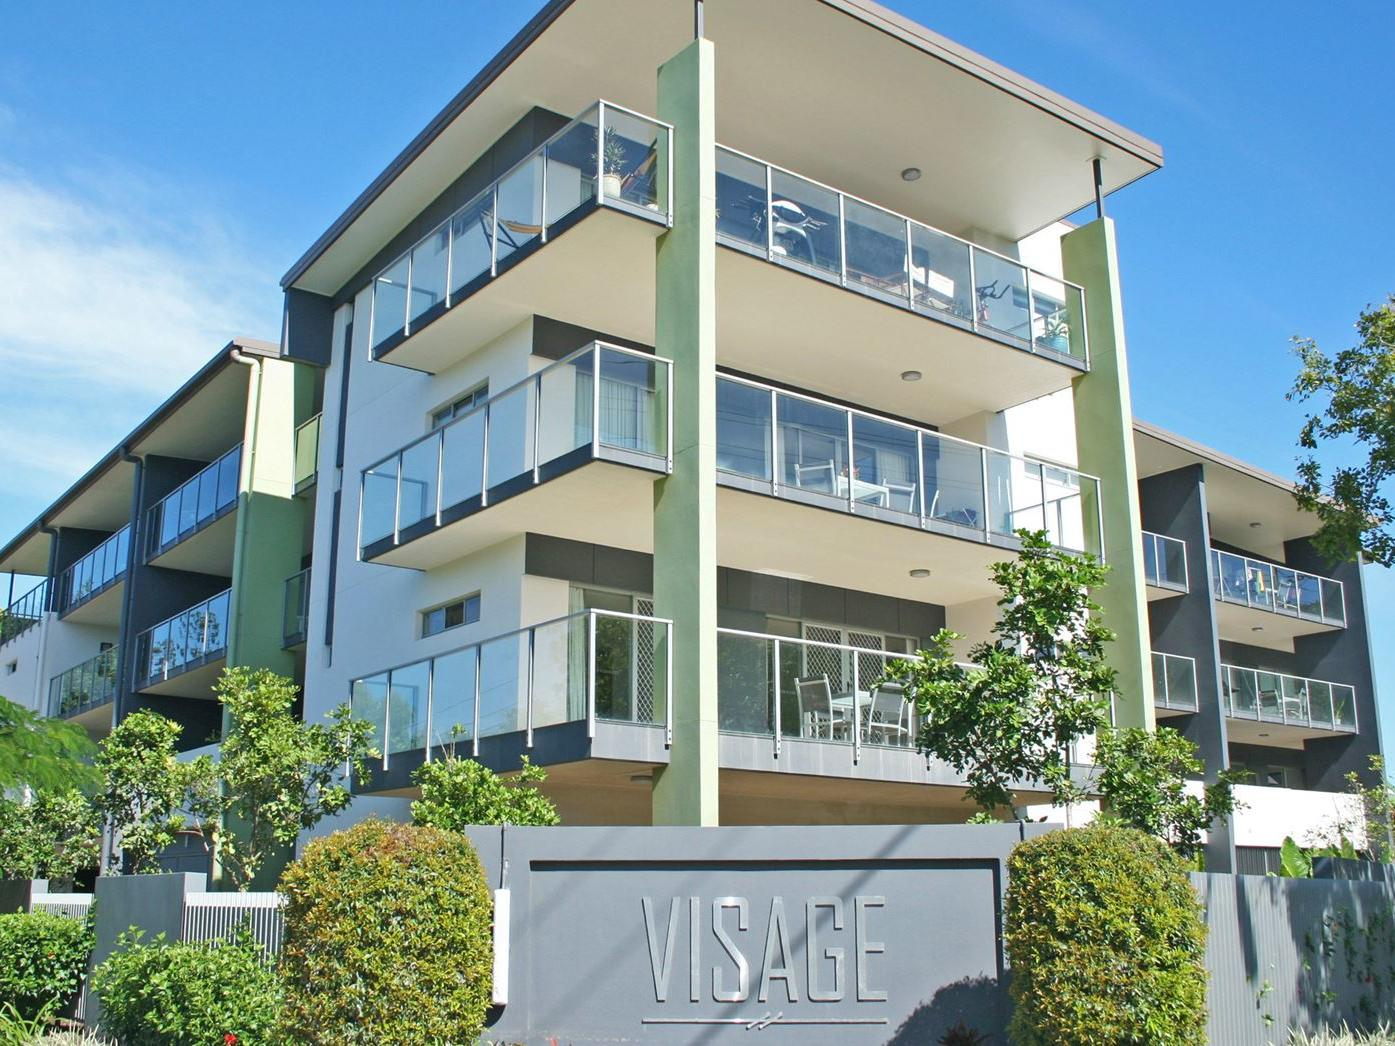 Visage_Outside Building